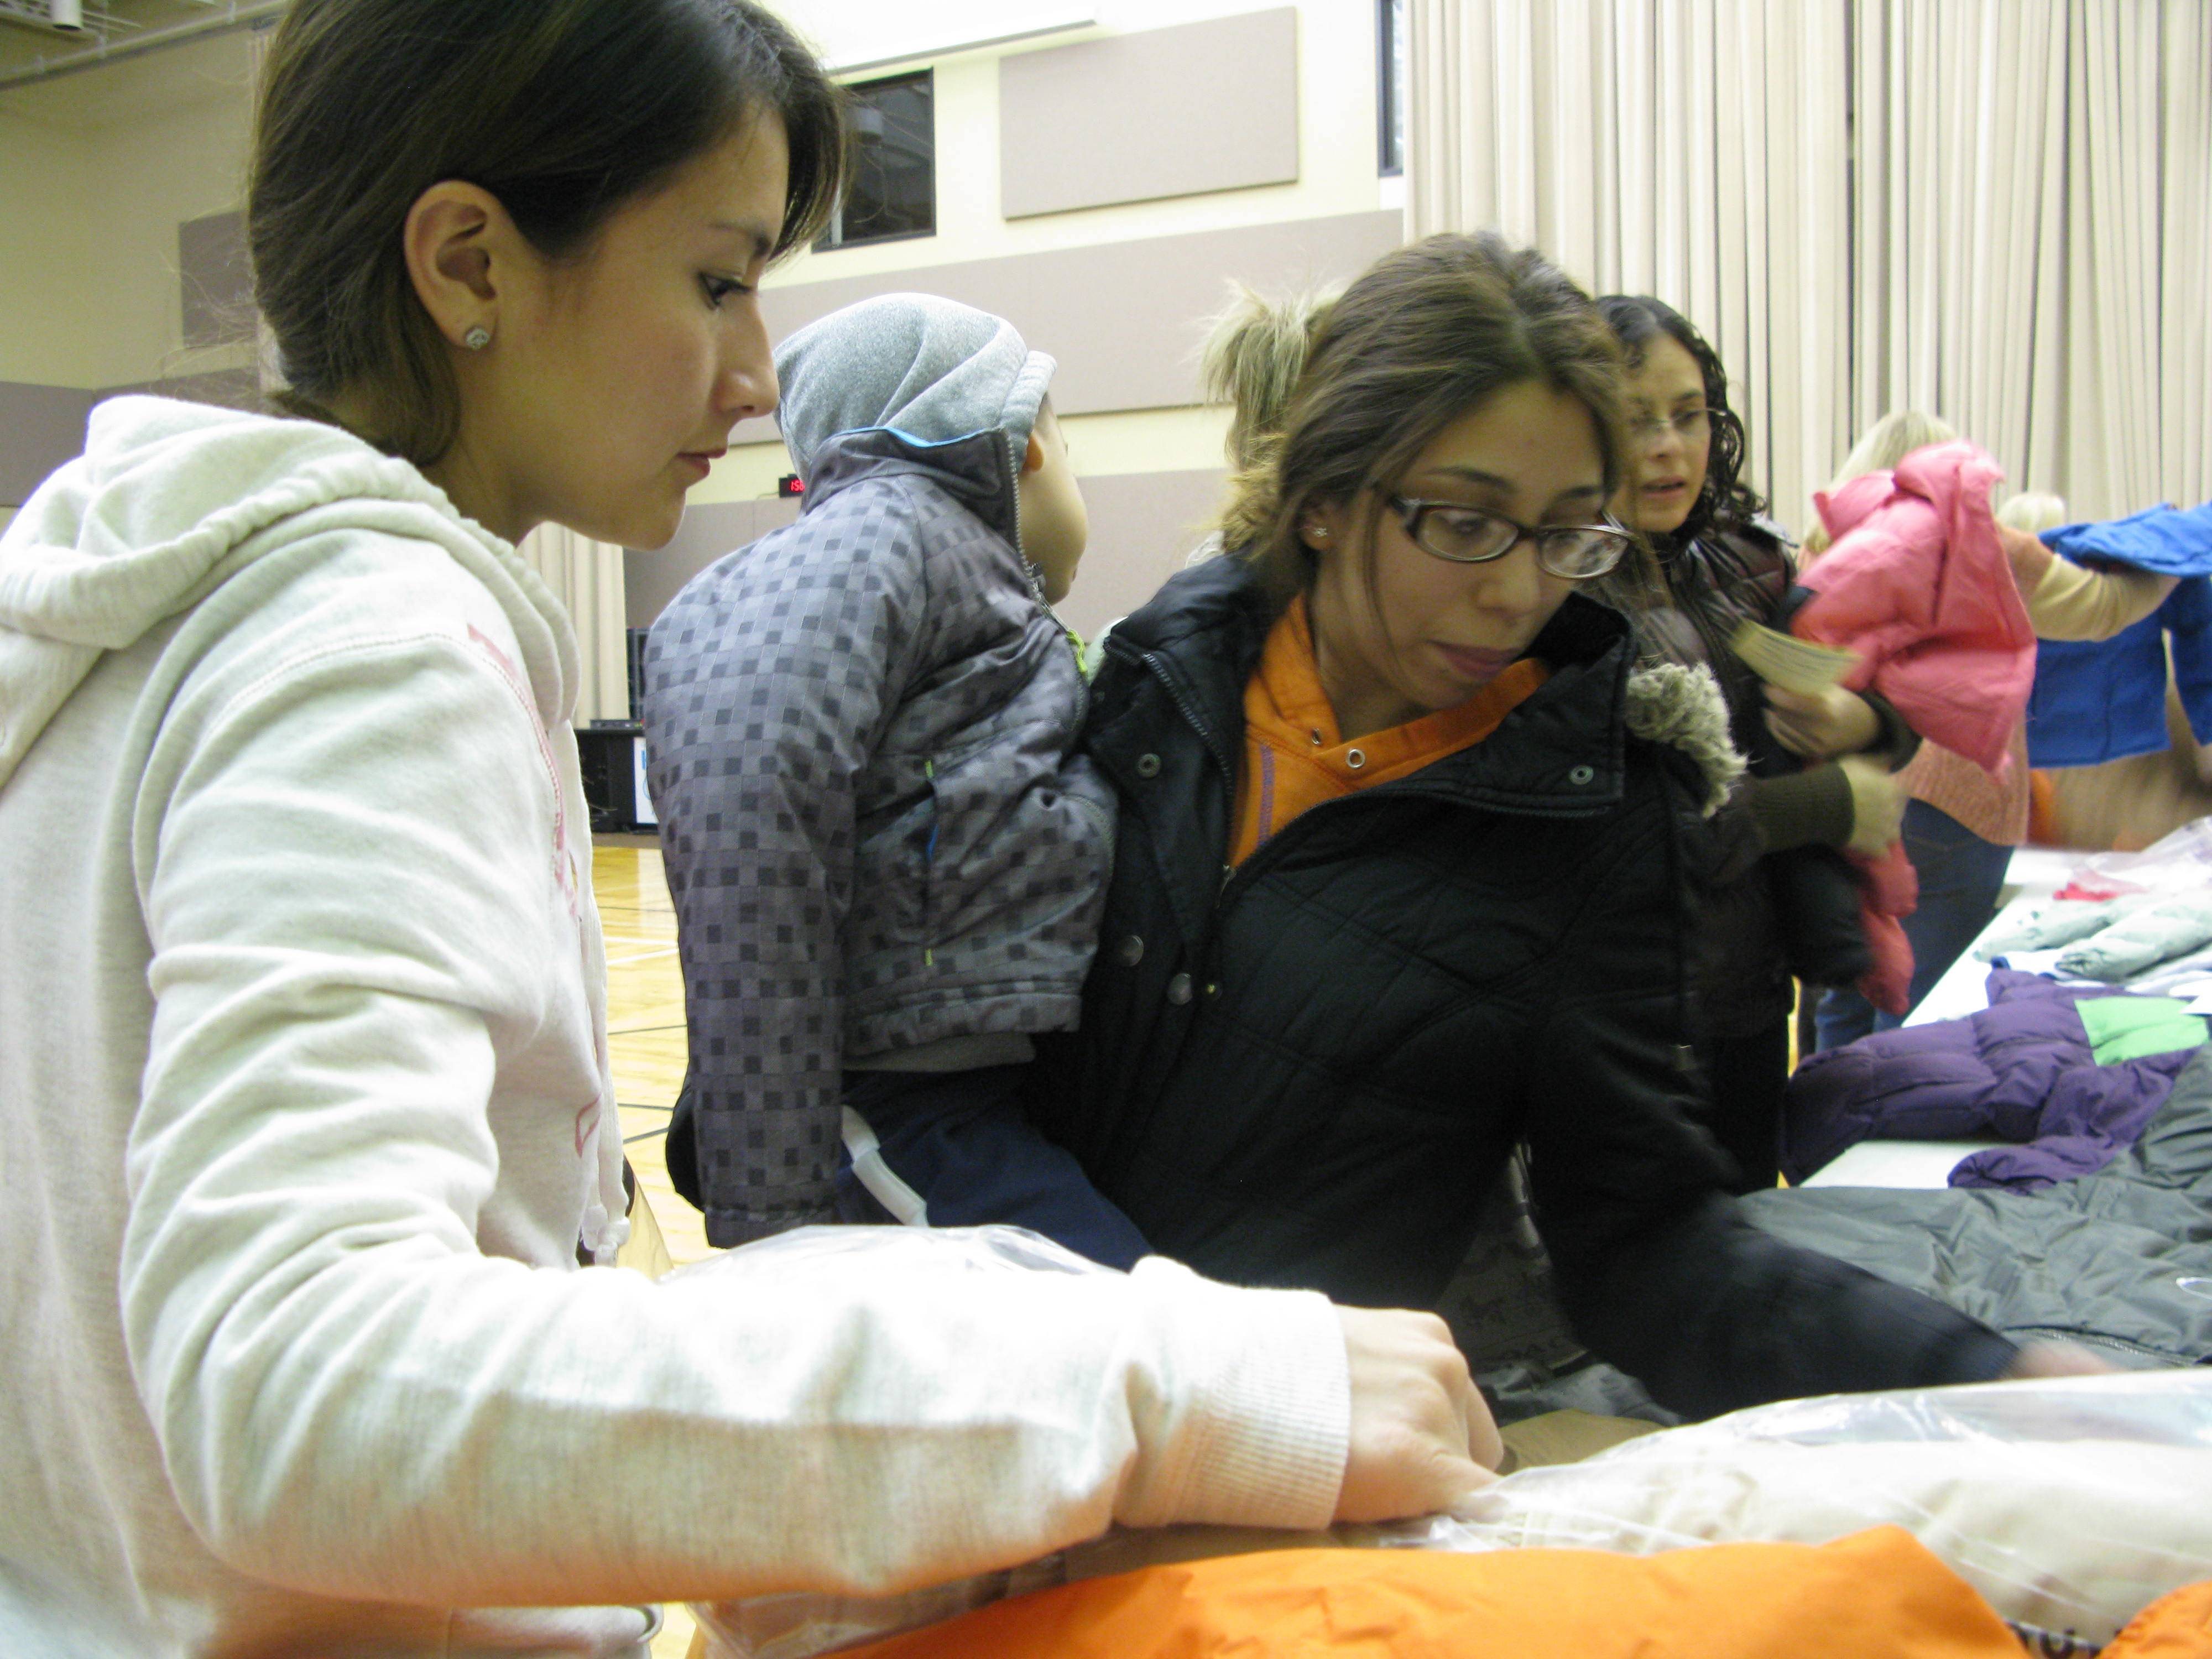 Volunteer Cara Liberacki, left, helps Mayra Munoz, of Palatine, get coats for her two children, including 2-year-old Dante Ortiz, Saturday at The Chapel in Lake Zurich during the church's annual mobile food pantry event.